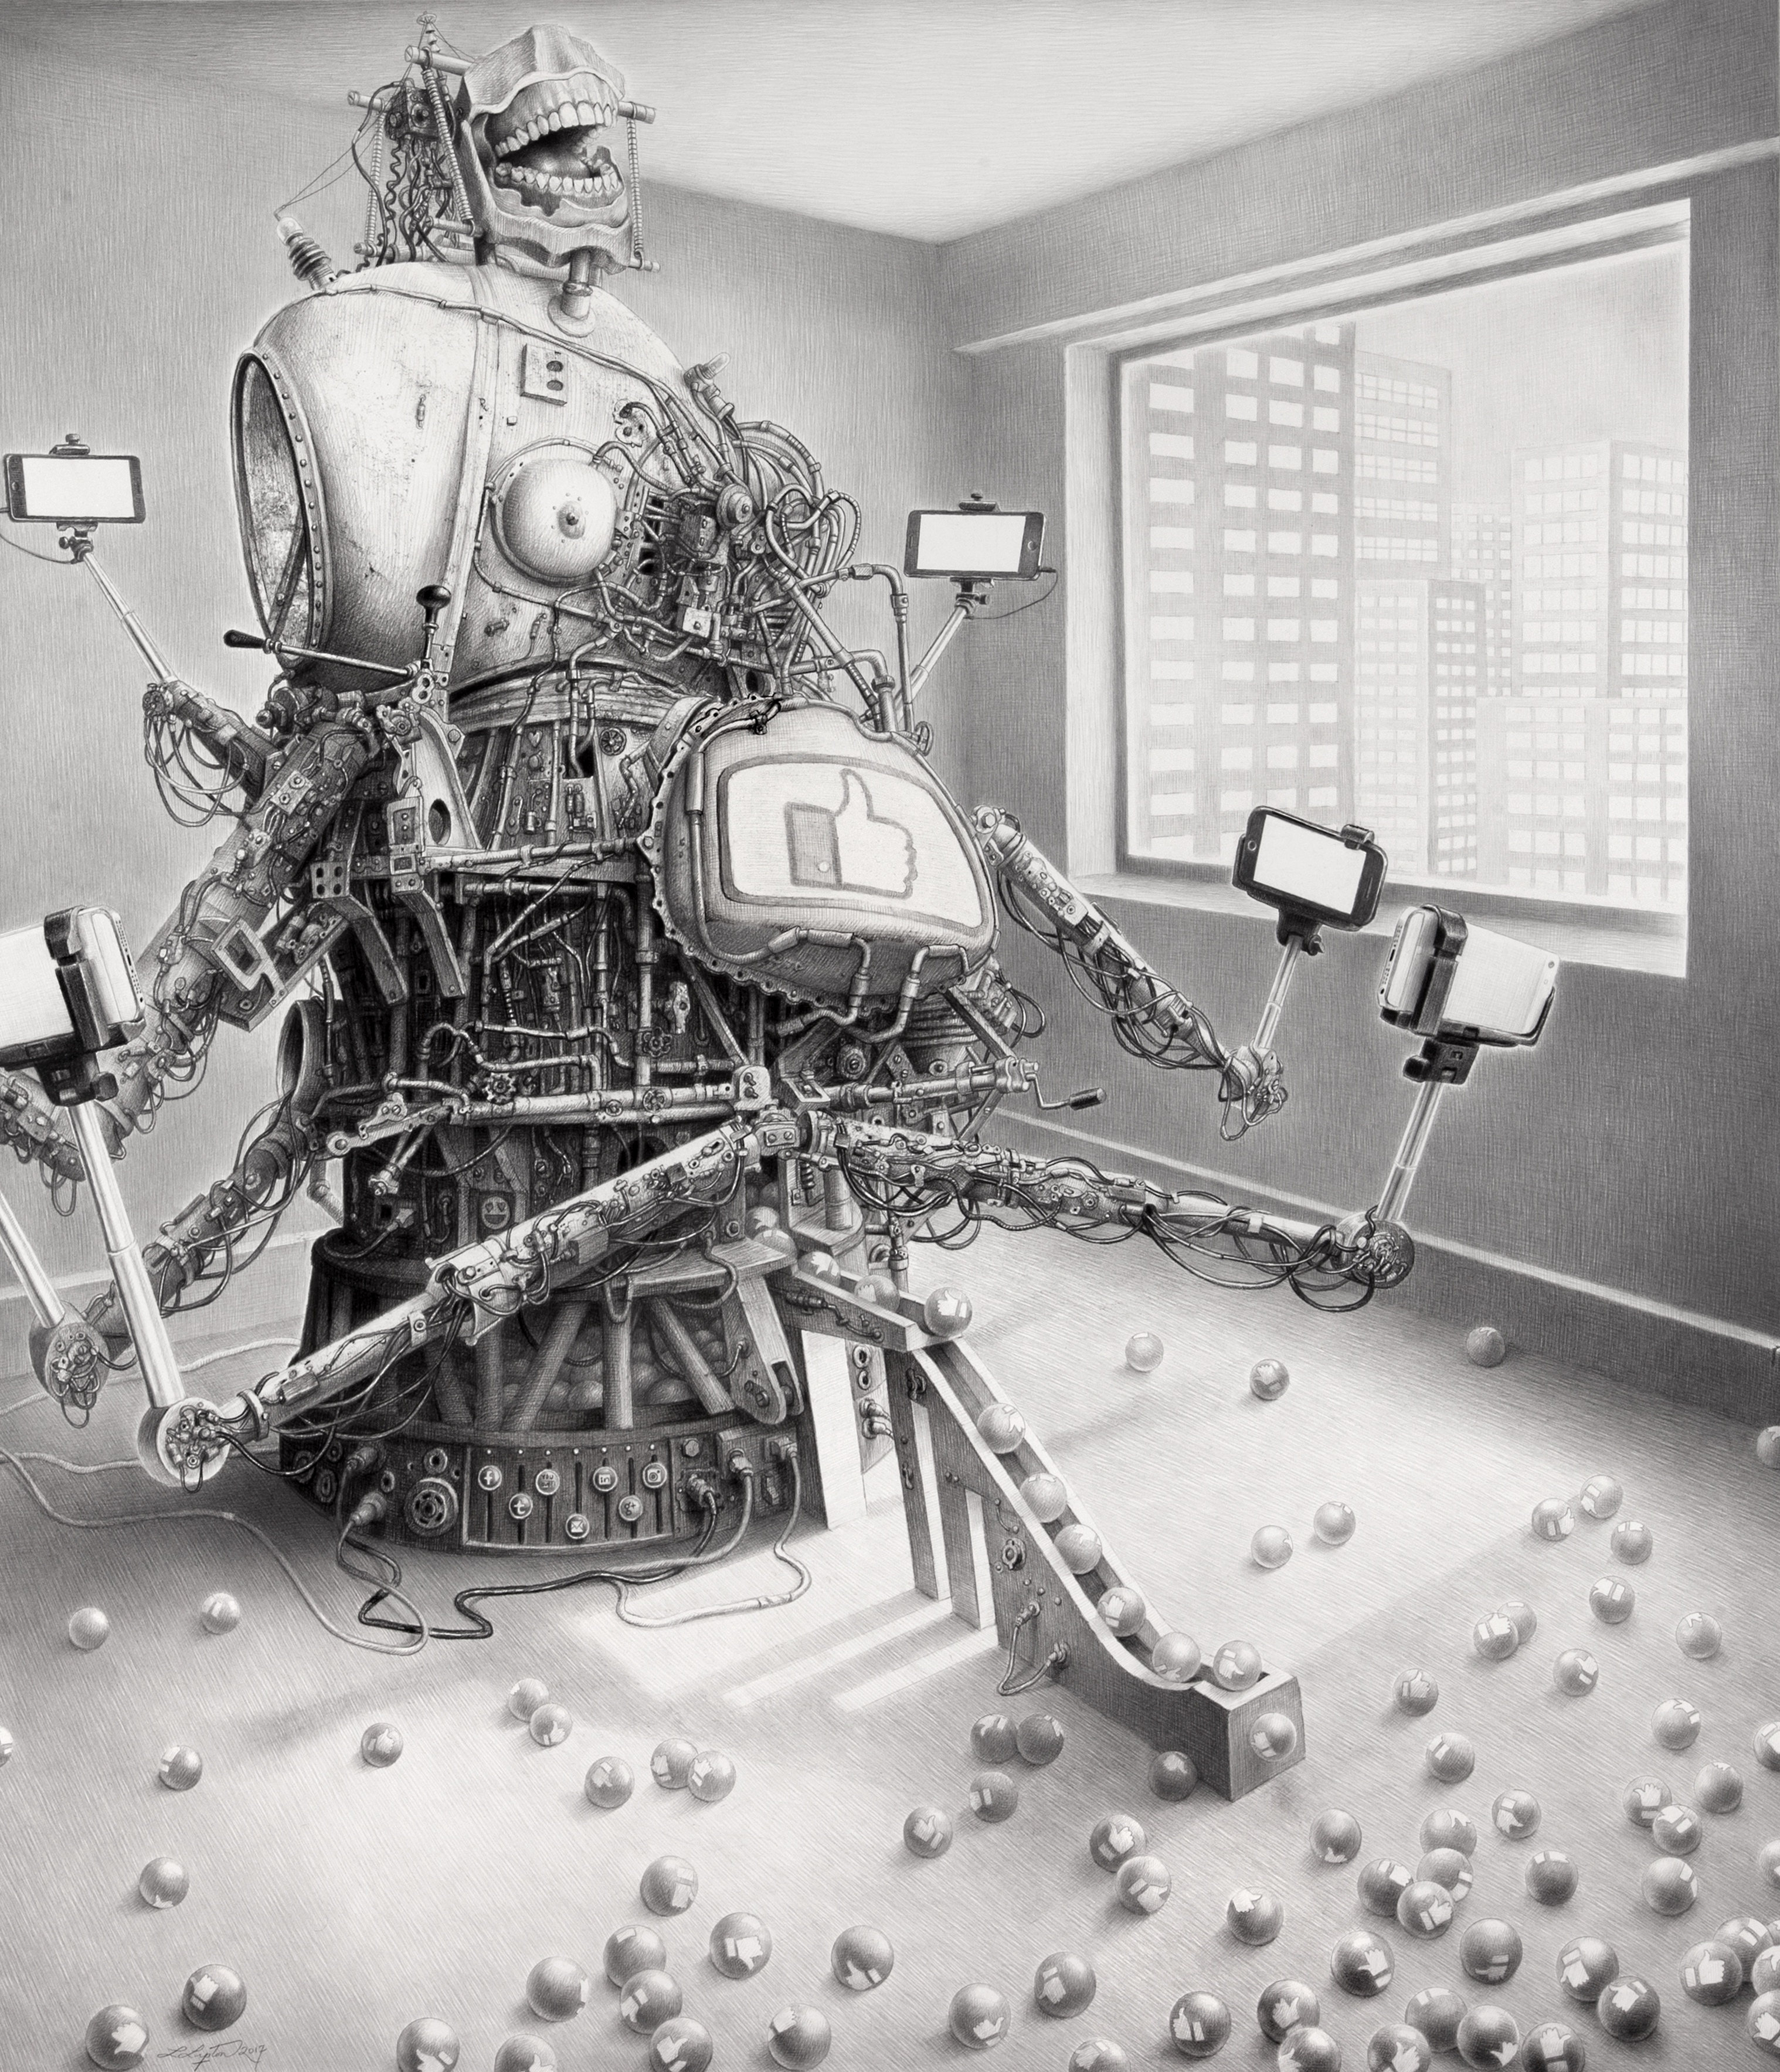 Laurie Lipton drawing, social media, technology, drawing, black and white, dystopia, likes, facebook, twitter, art lovers, art collectors